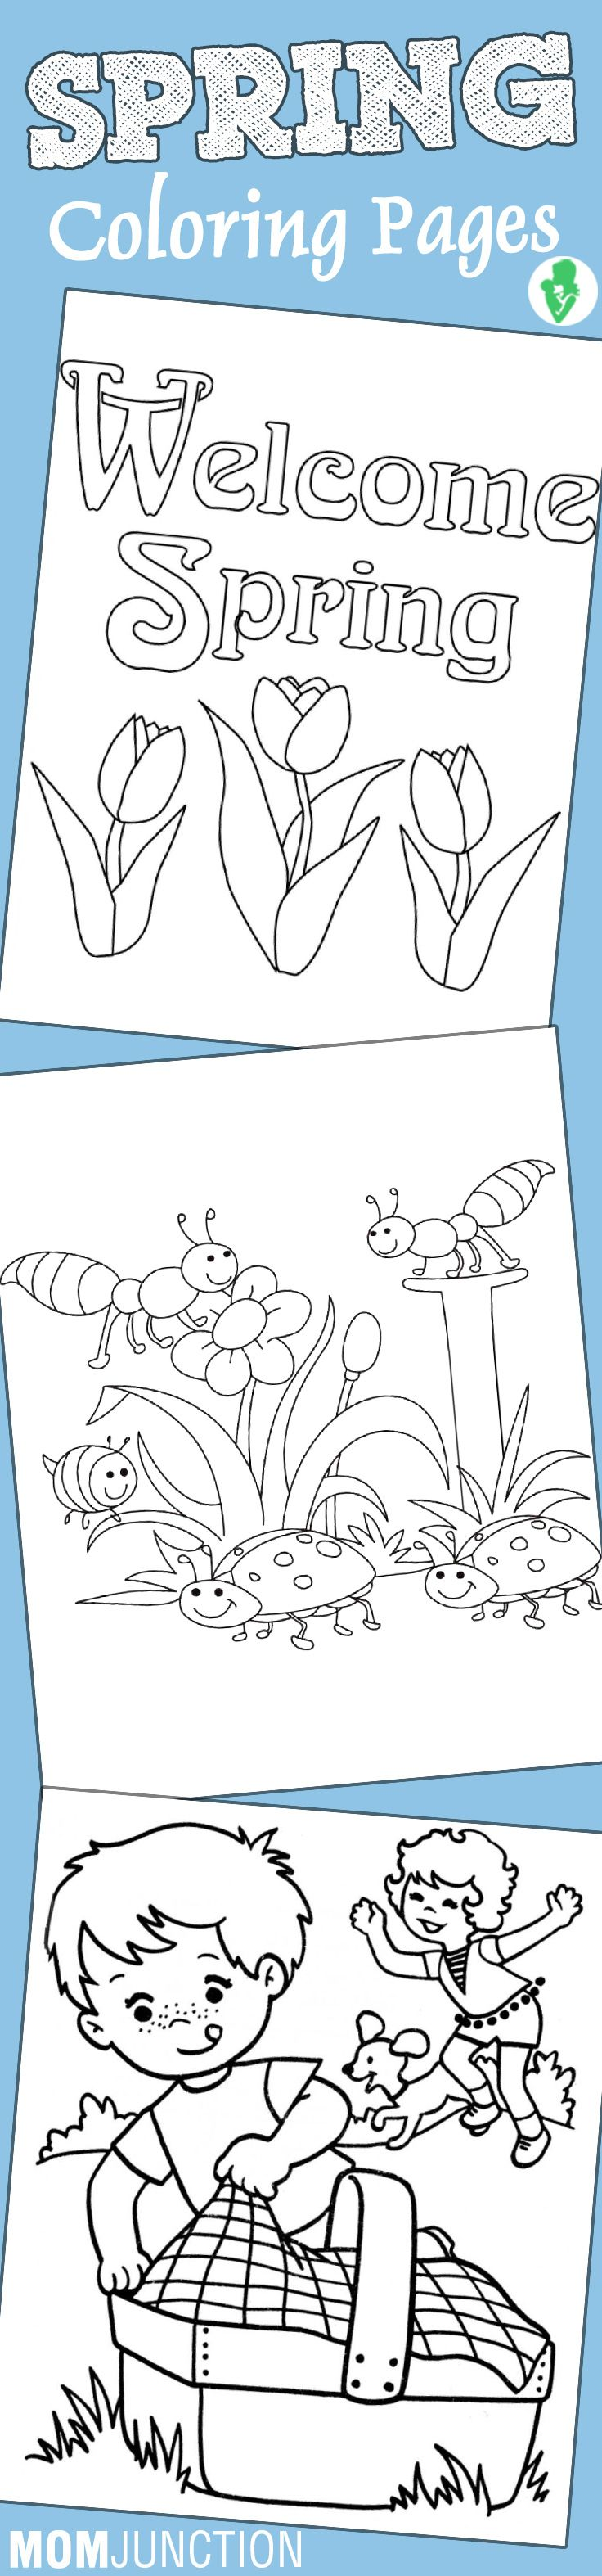 Online coloring toddlers - Top 10 Spring Coloring Pages Your Toddler Will Love To Color